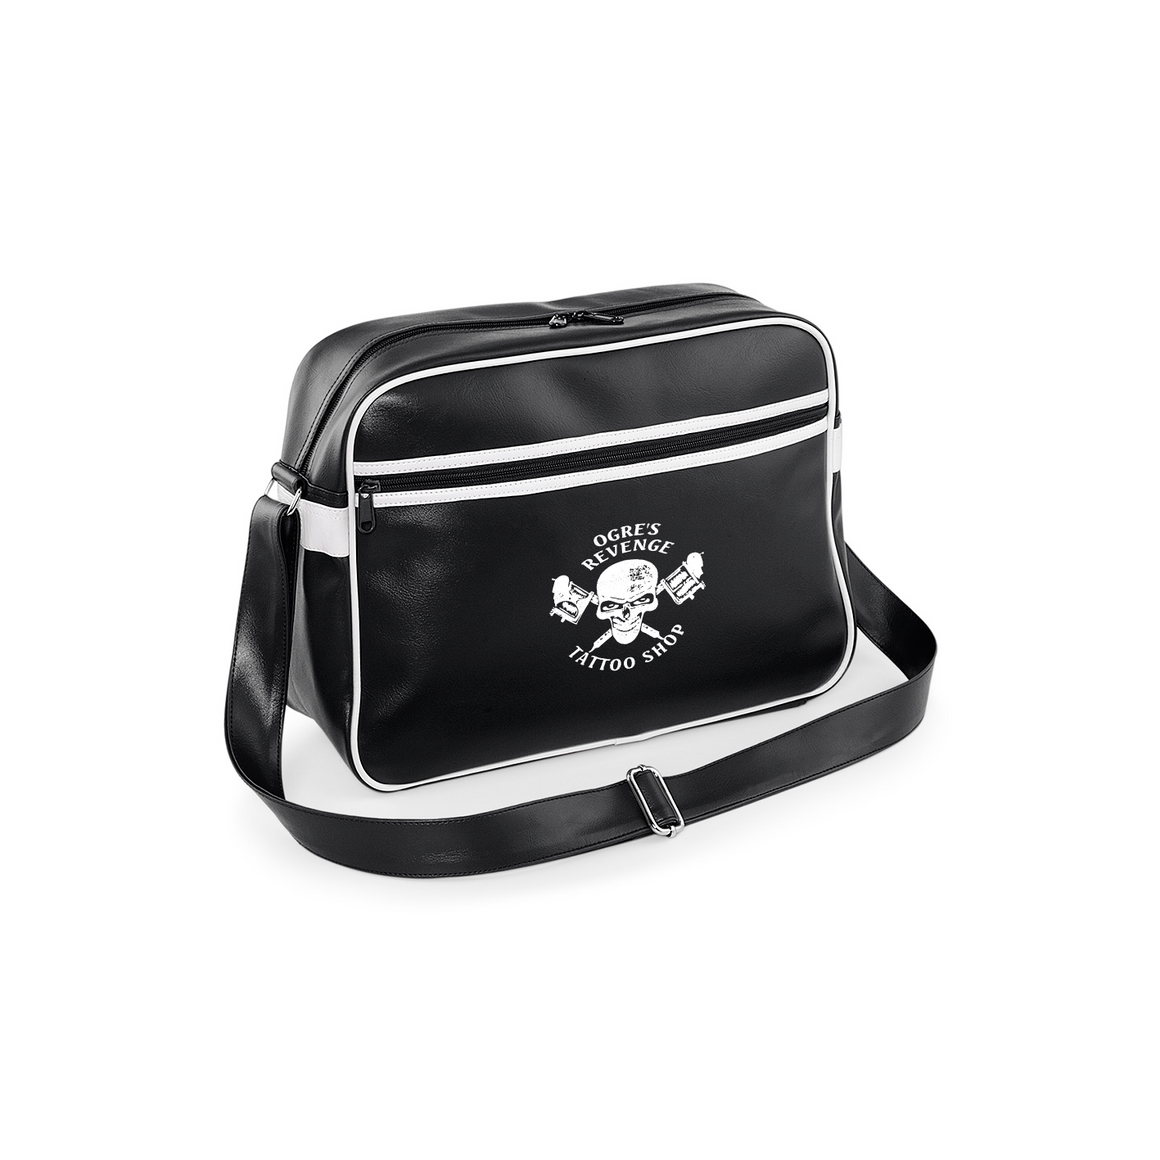 Ogres Revenge Tattoo Shop Shoulder Bag - Made From PU For That Old School Leather Look